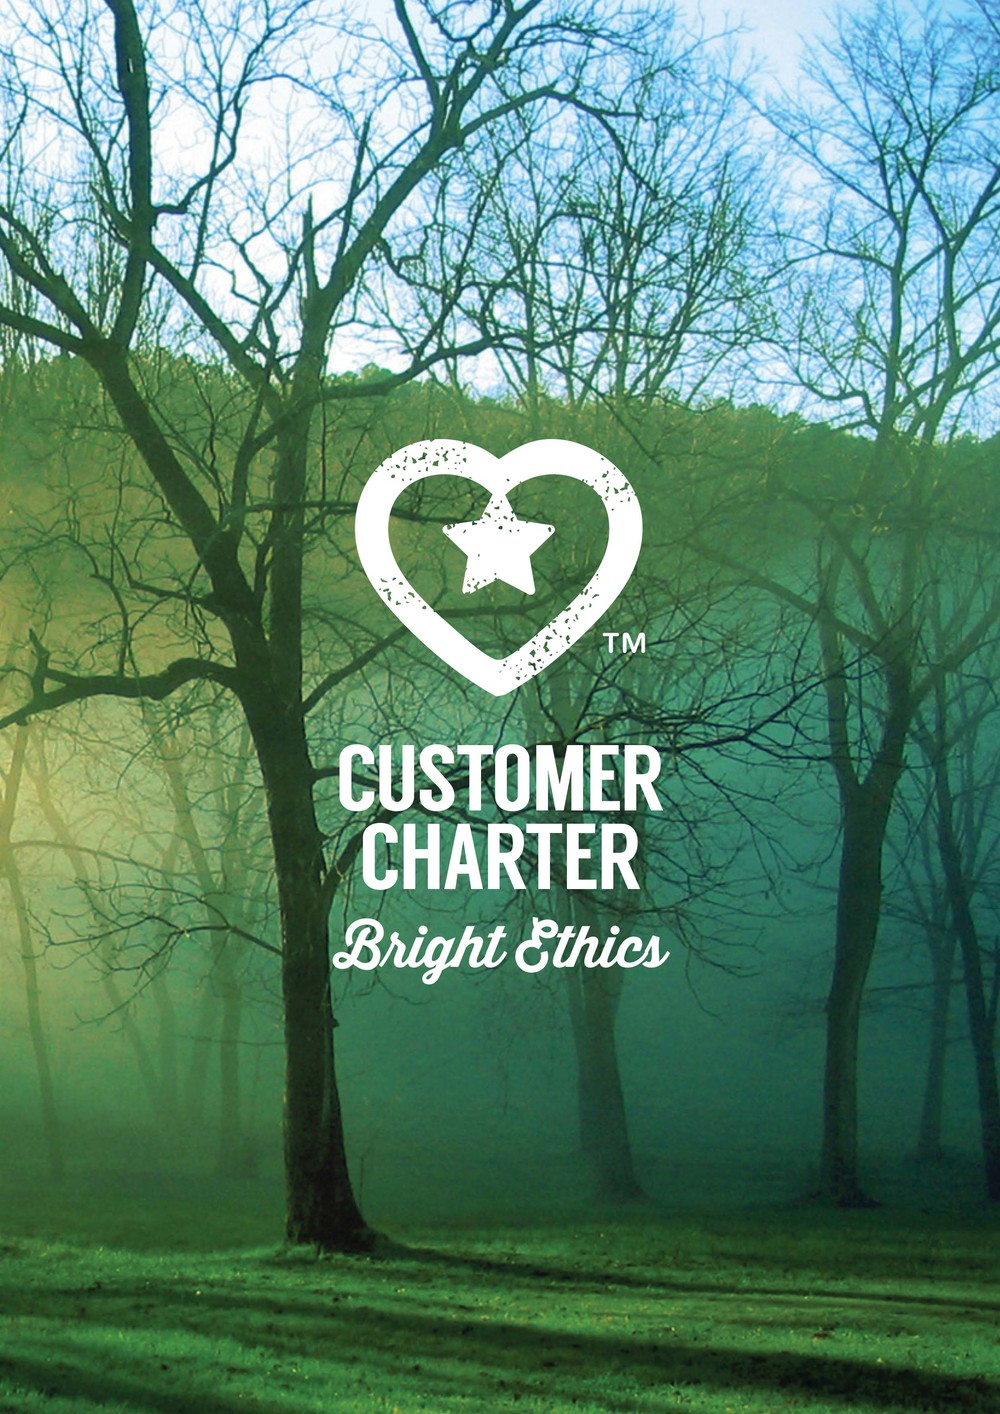 customercharter